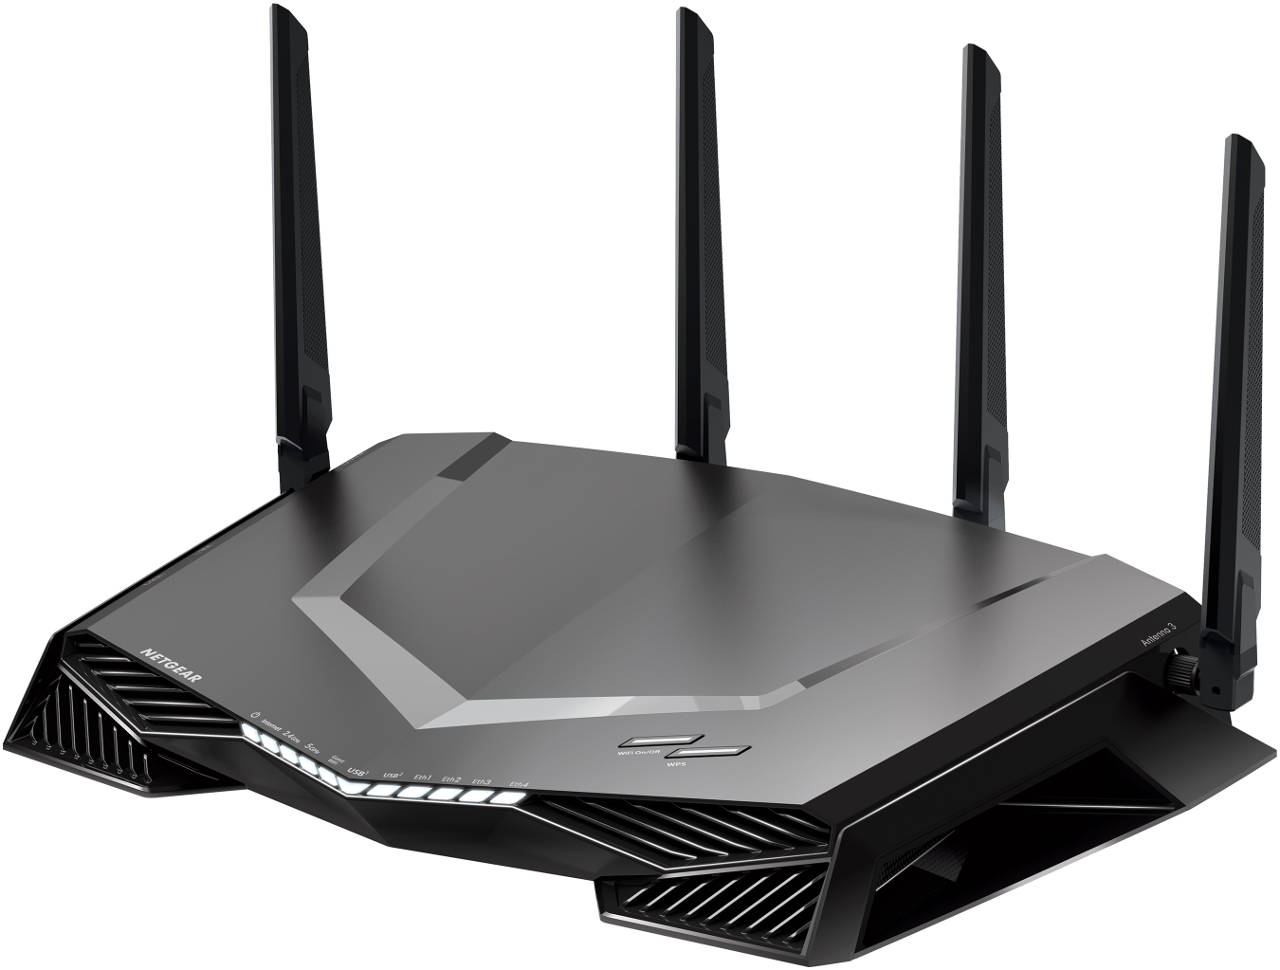 Routeur Wi-Fi Netgear Nighthawk Pro Gaming (XR500)